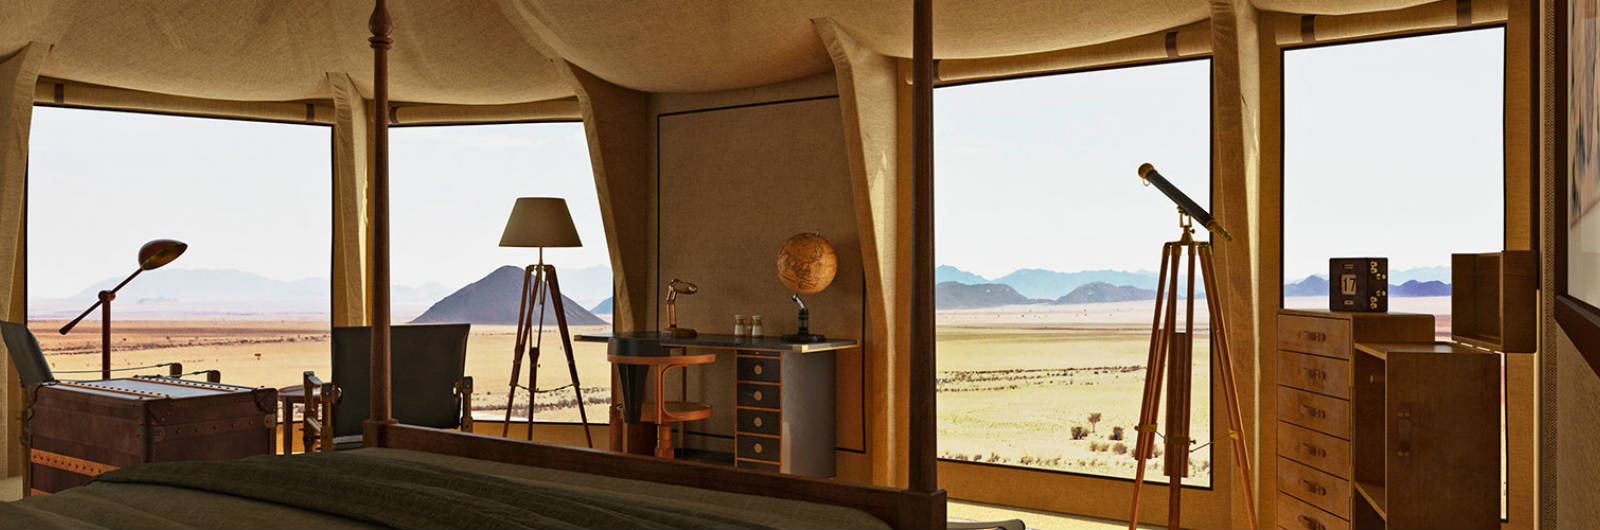 You Can Find This Lux Oasis in the Namibian Desert